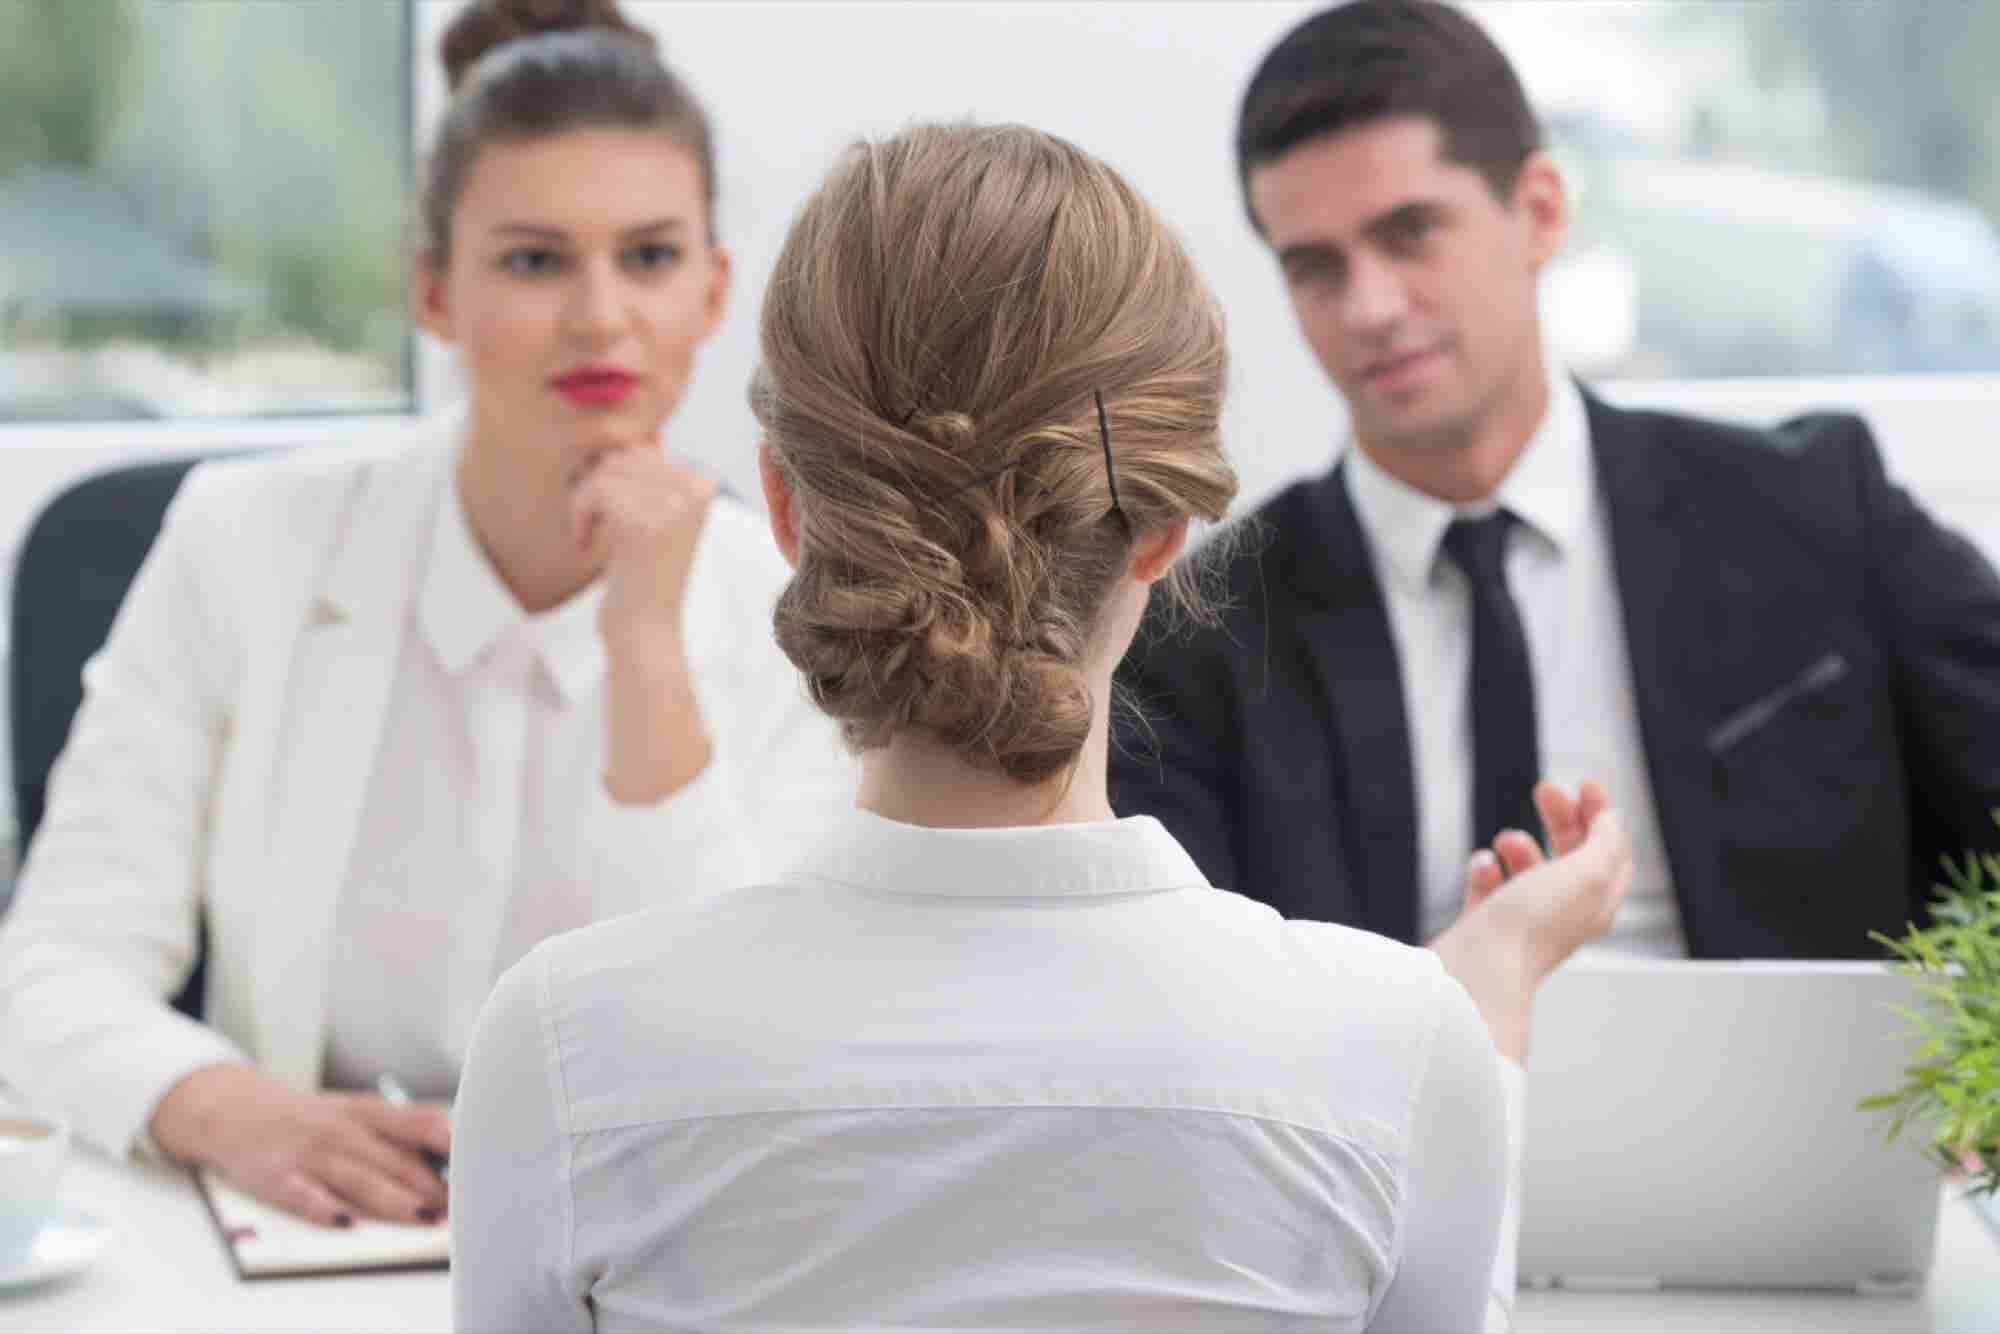 Top #5 Challenges Faced by Candidates During Interviews